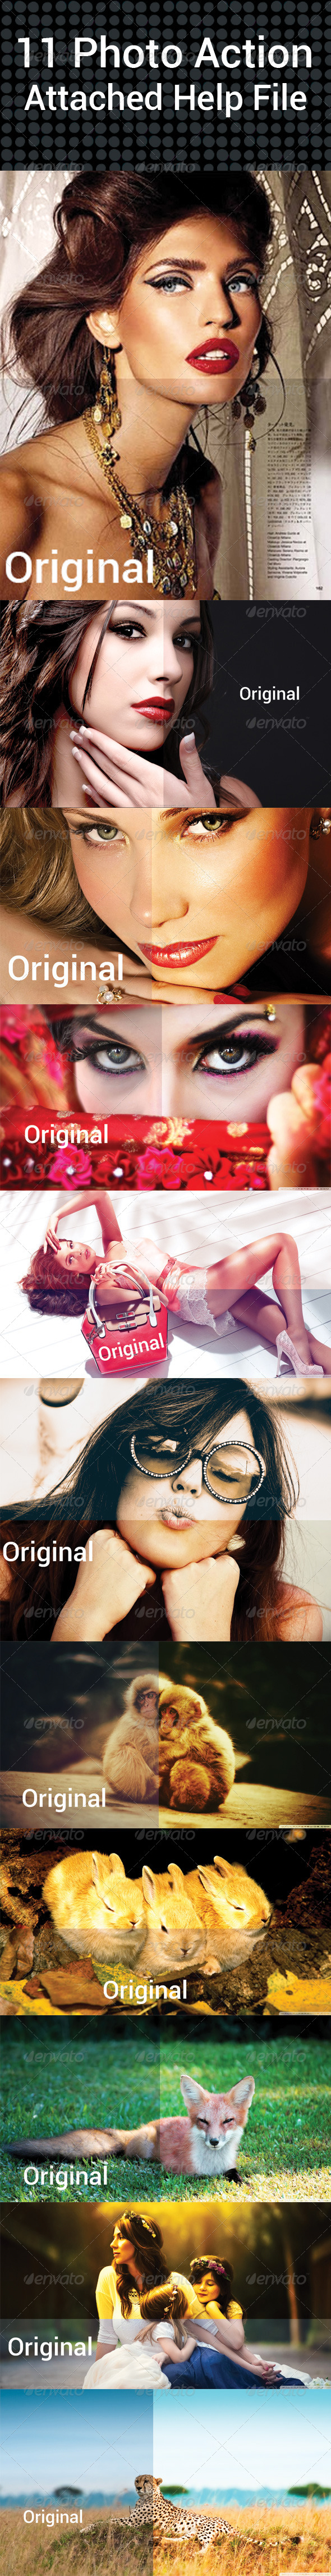 GraphicRiver 11 Photo Action 7637627